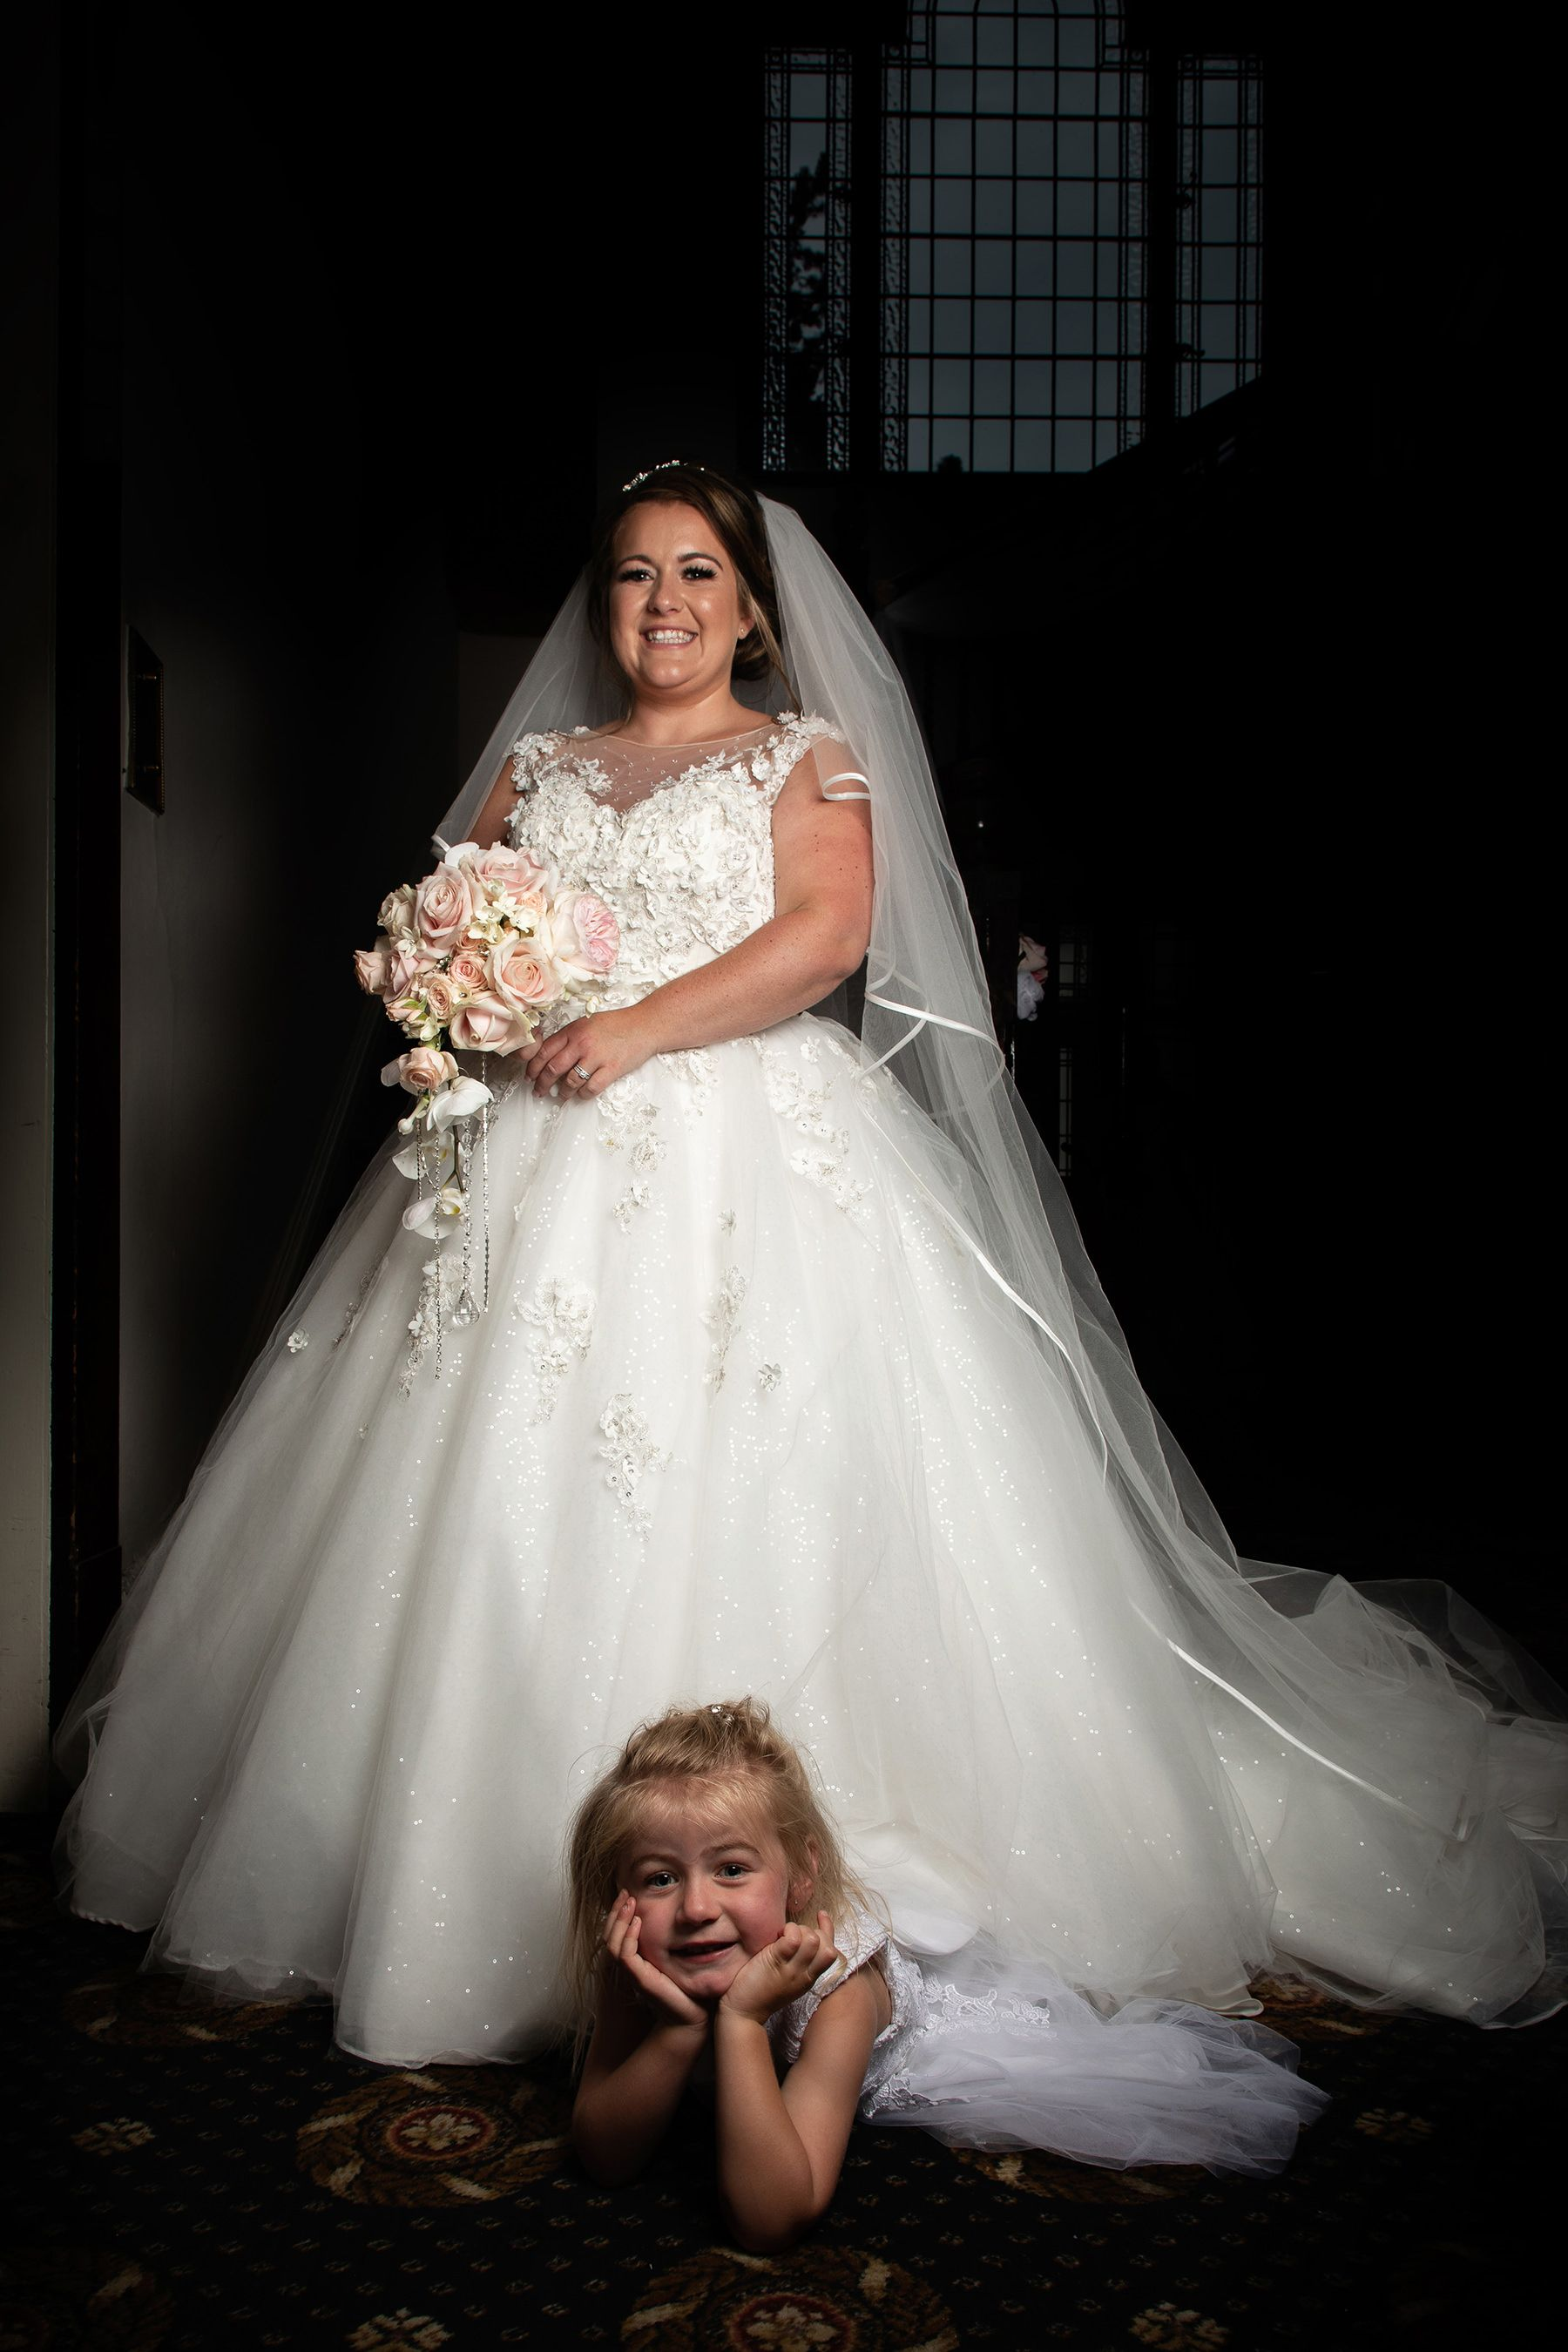 the bride and her daughter under the wedding dress